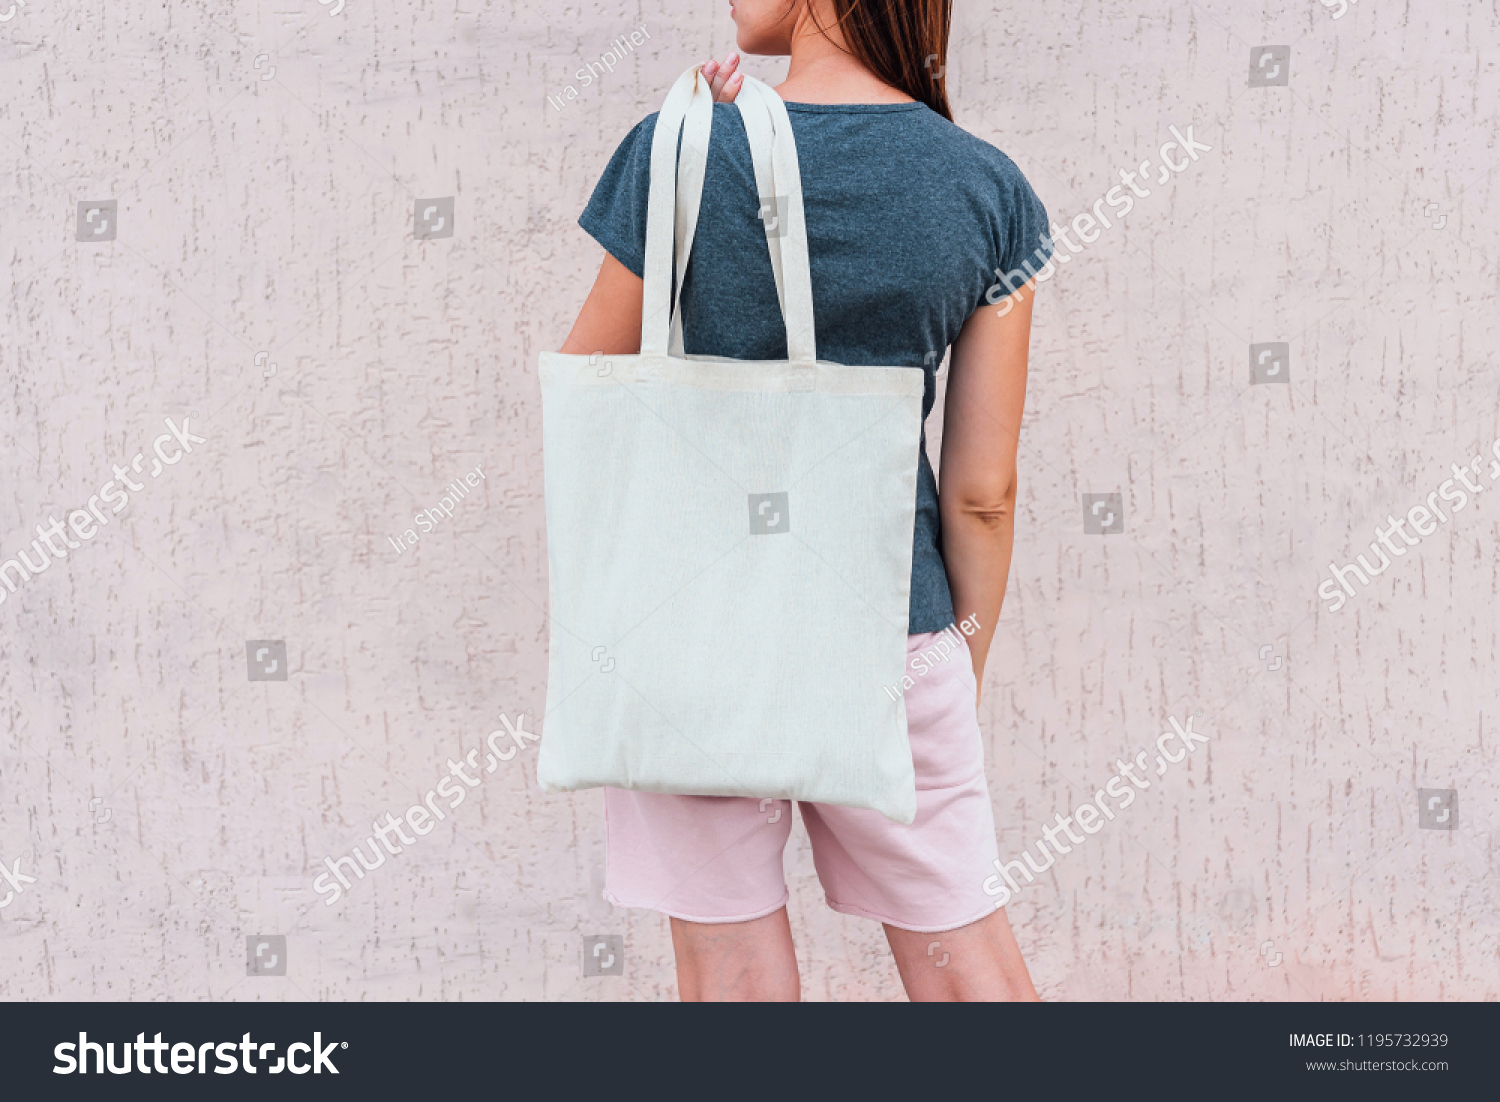 Young woman with white cotton bag in her hands.